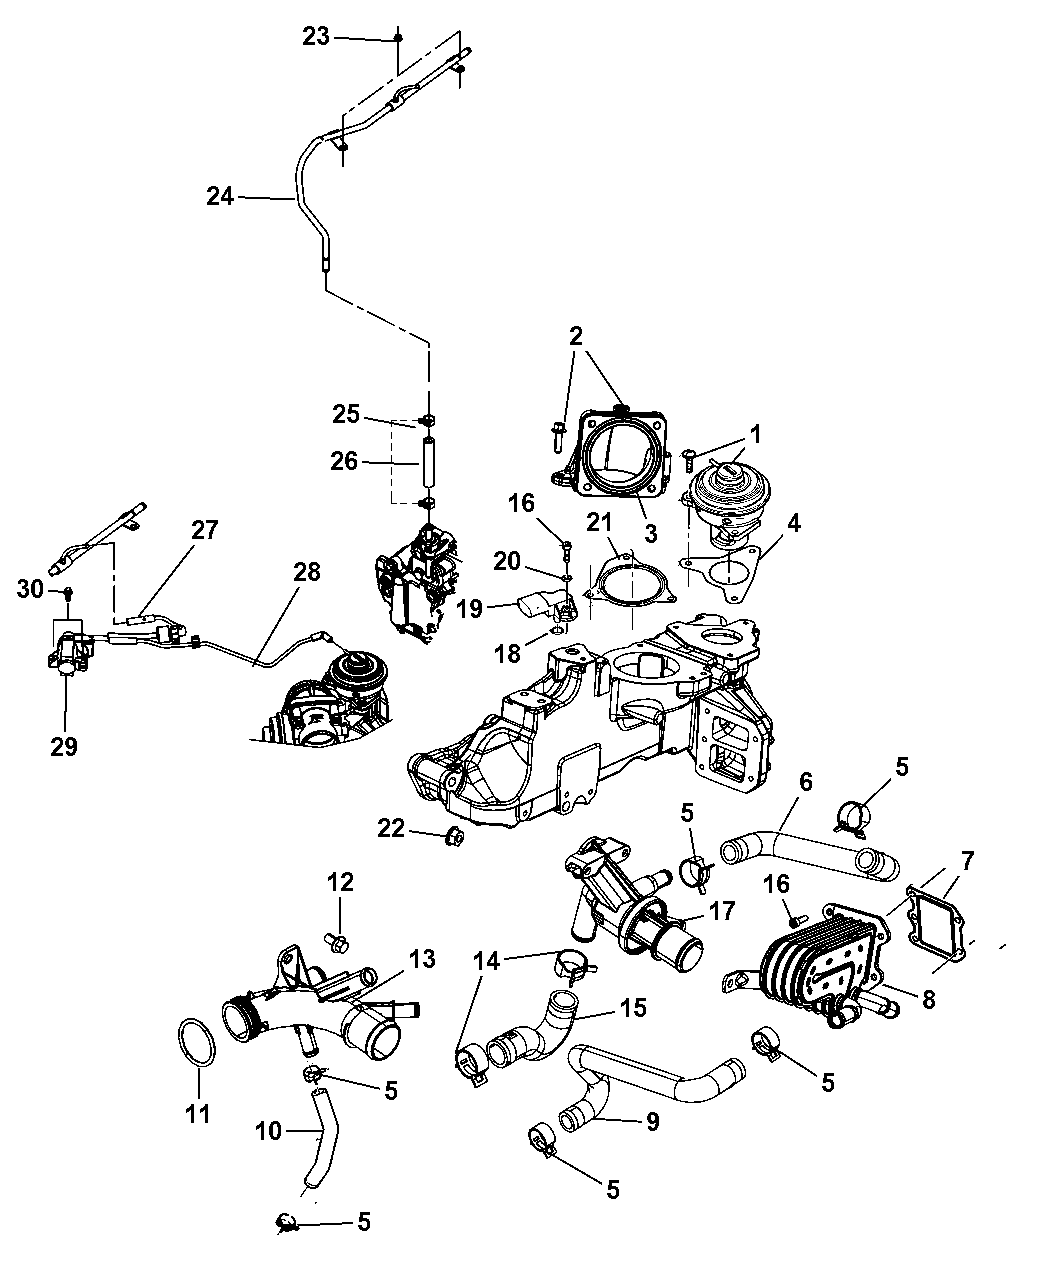 2008 Jeep Egr Wiring Library Ecodiesel Engine Diagram Additionally 1989 Wrangler Yj As Valve Related Thumbnail 1